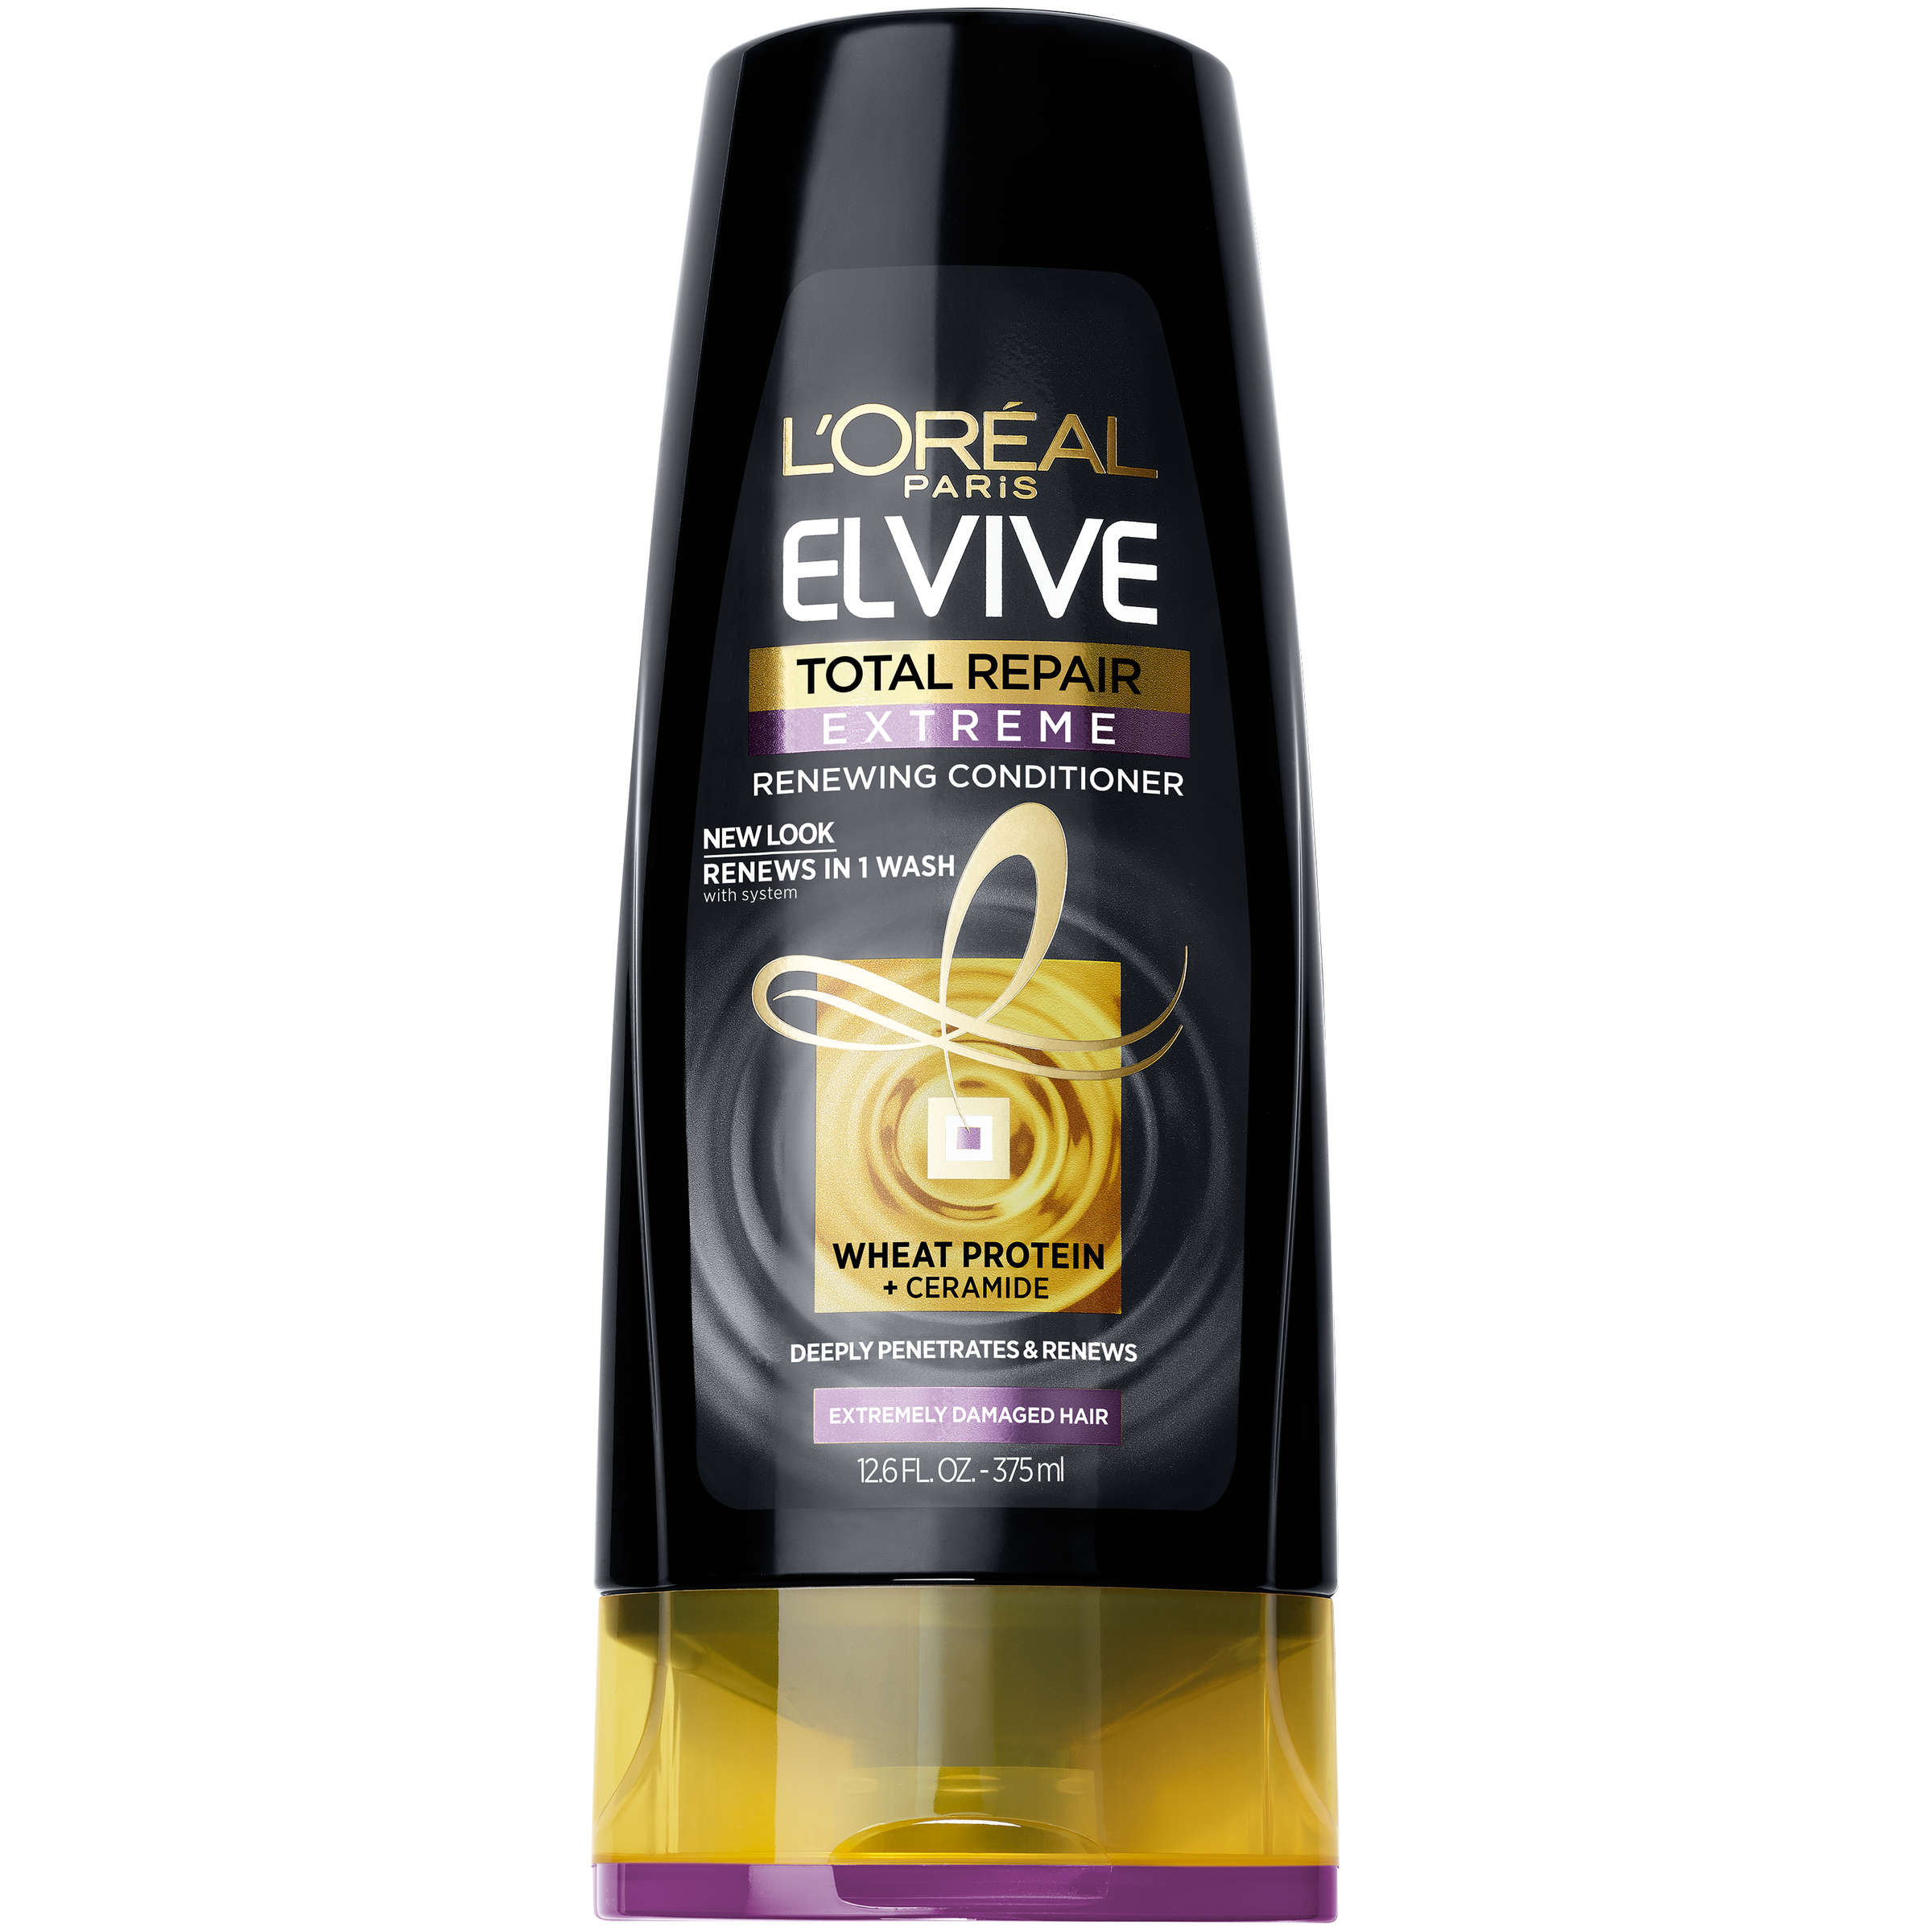 L'Oreal Paris Elvive Total Repair Extreme Renewing Conditioner 12.6 FL OZ